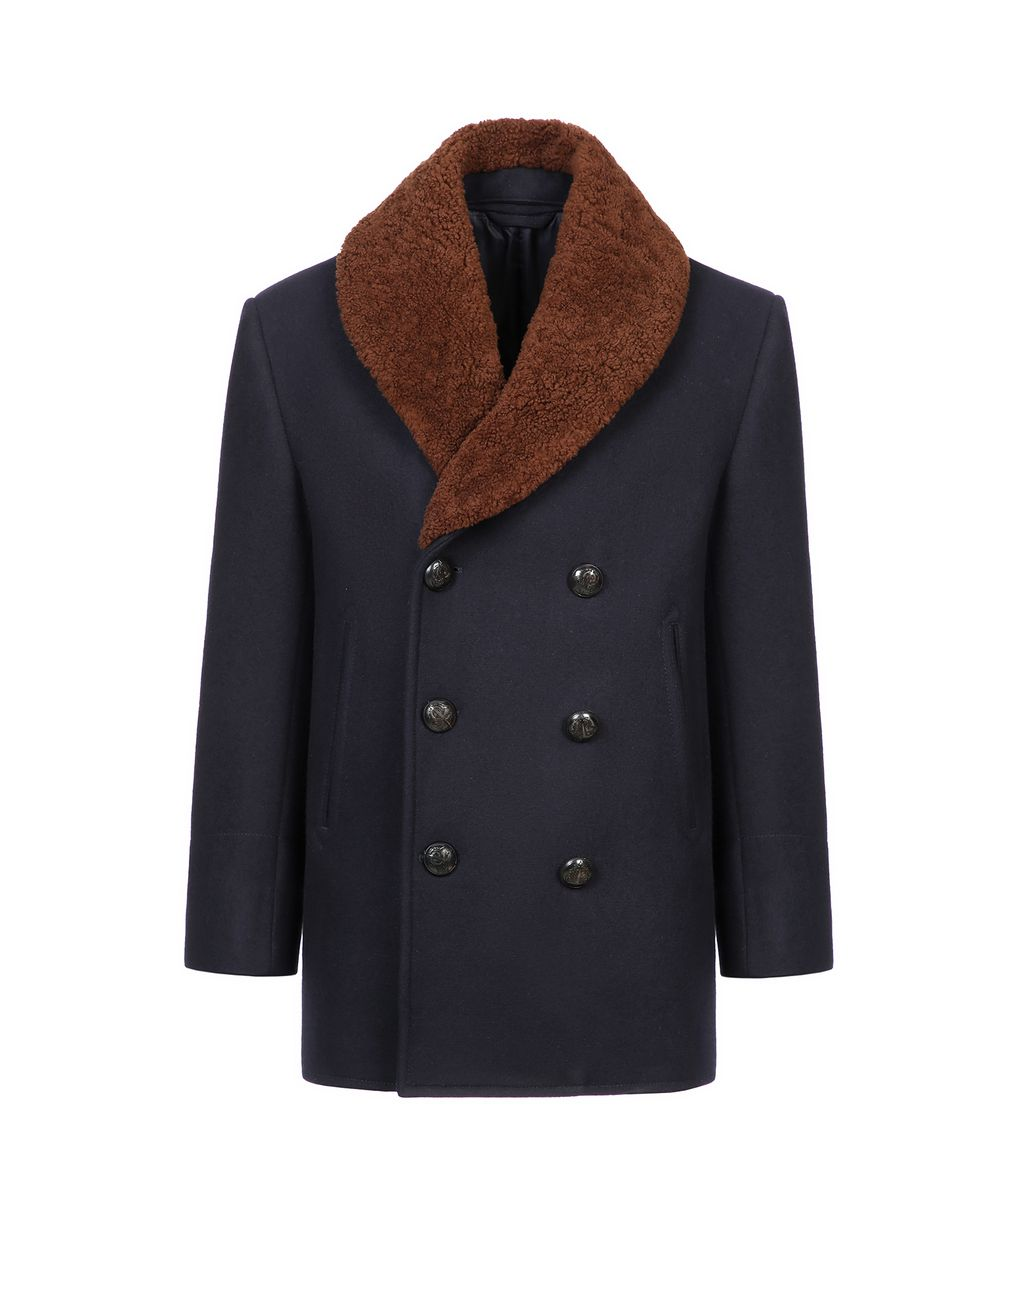 BRIONI Navy Blue Double Breasted Coat Coats & Raincoats Man f